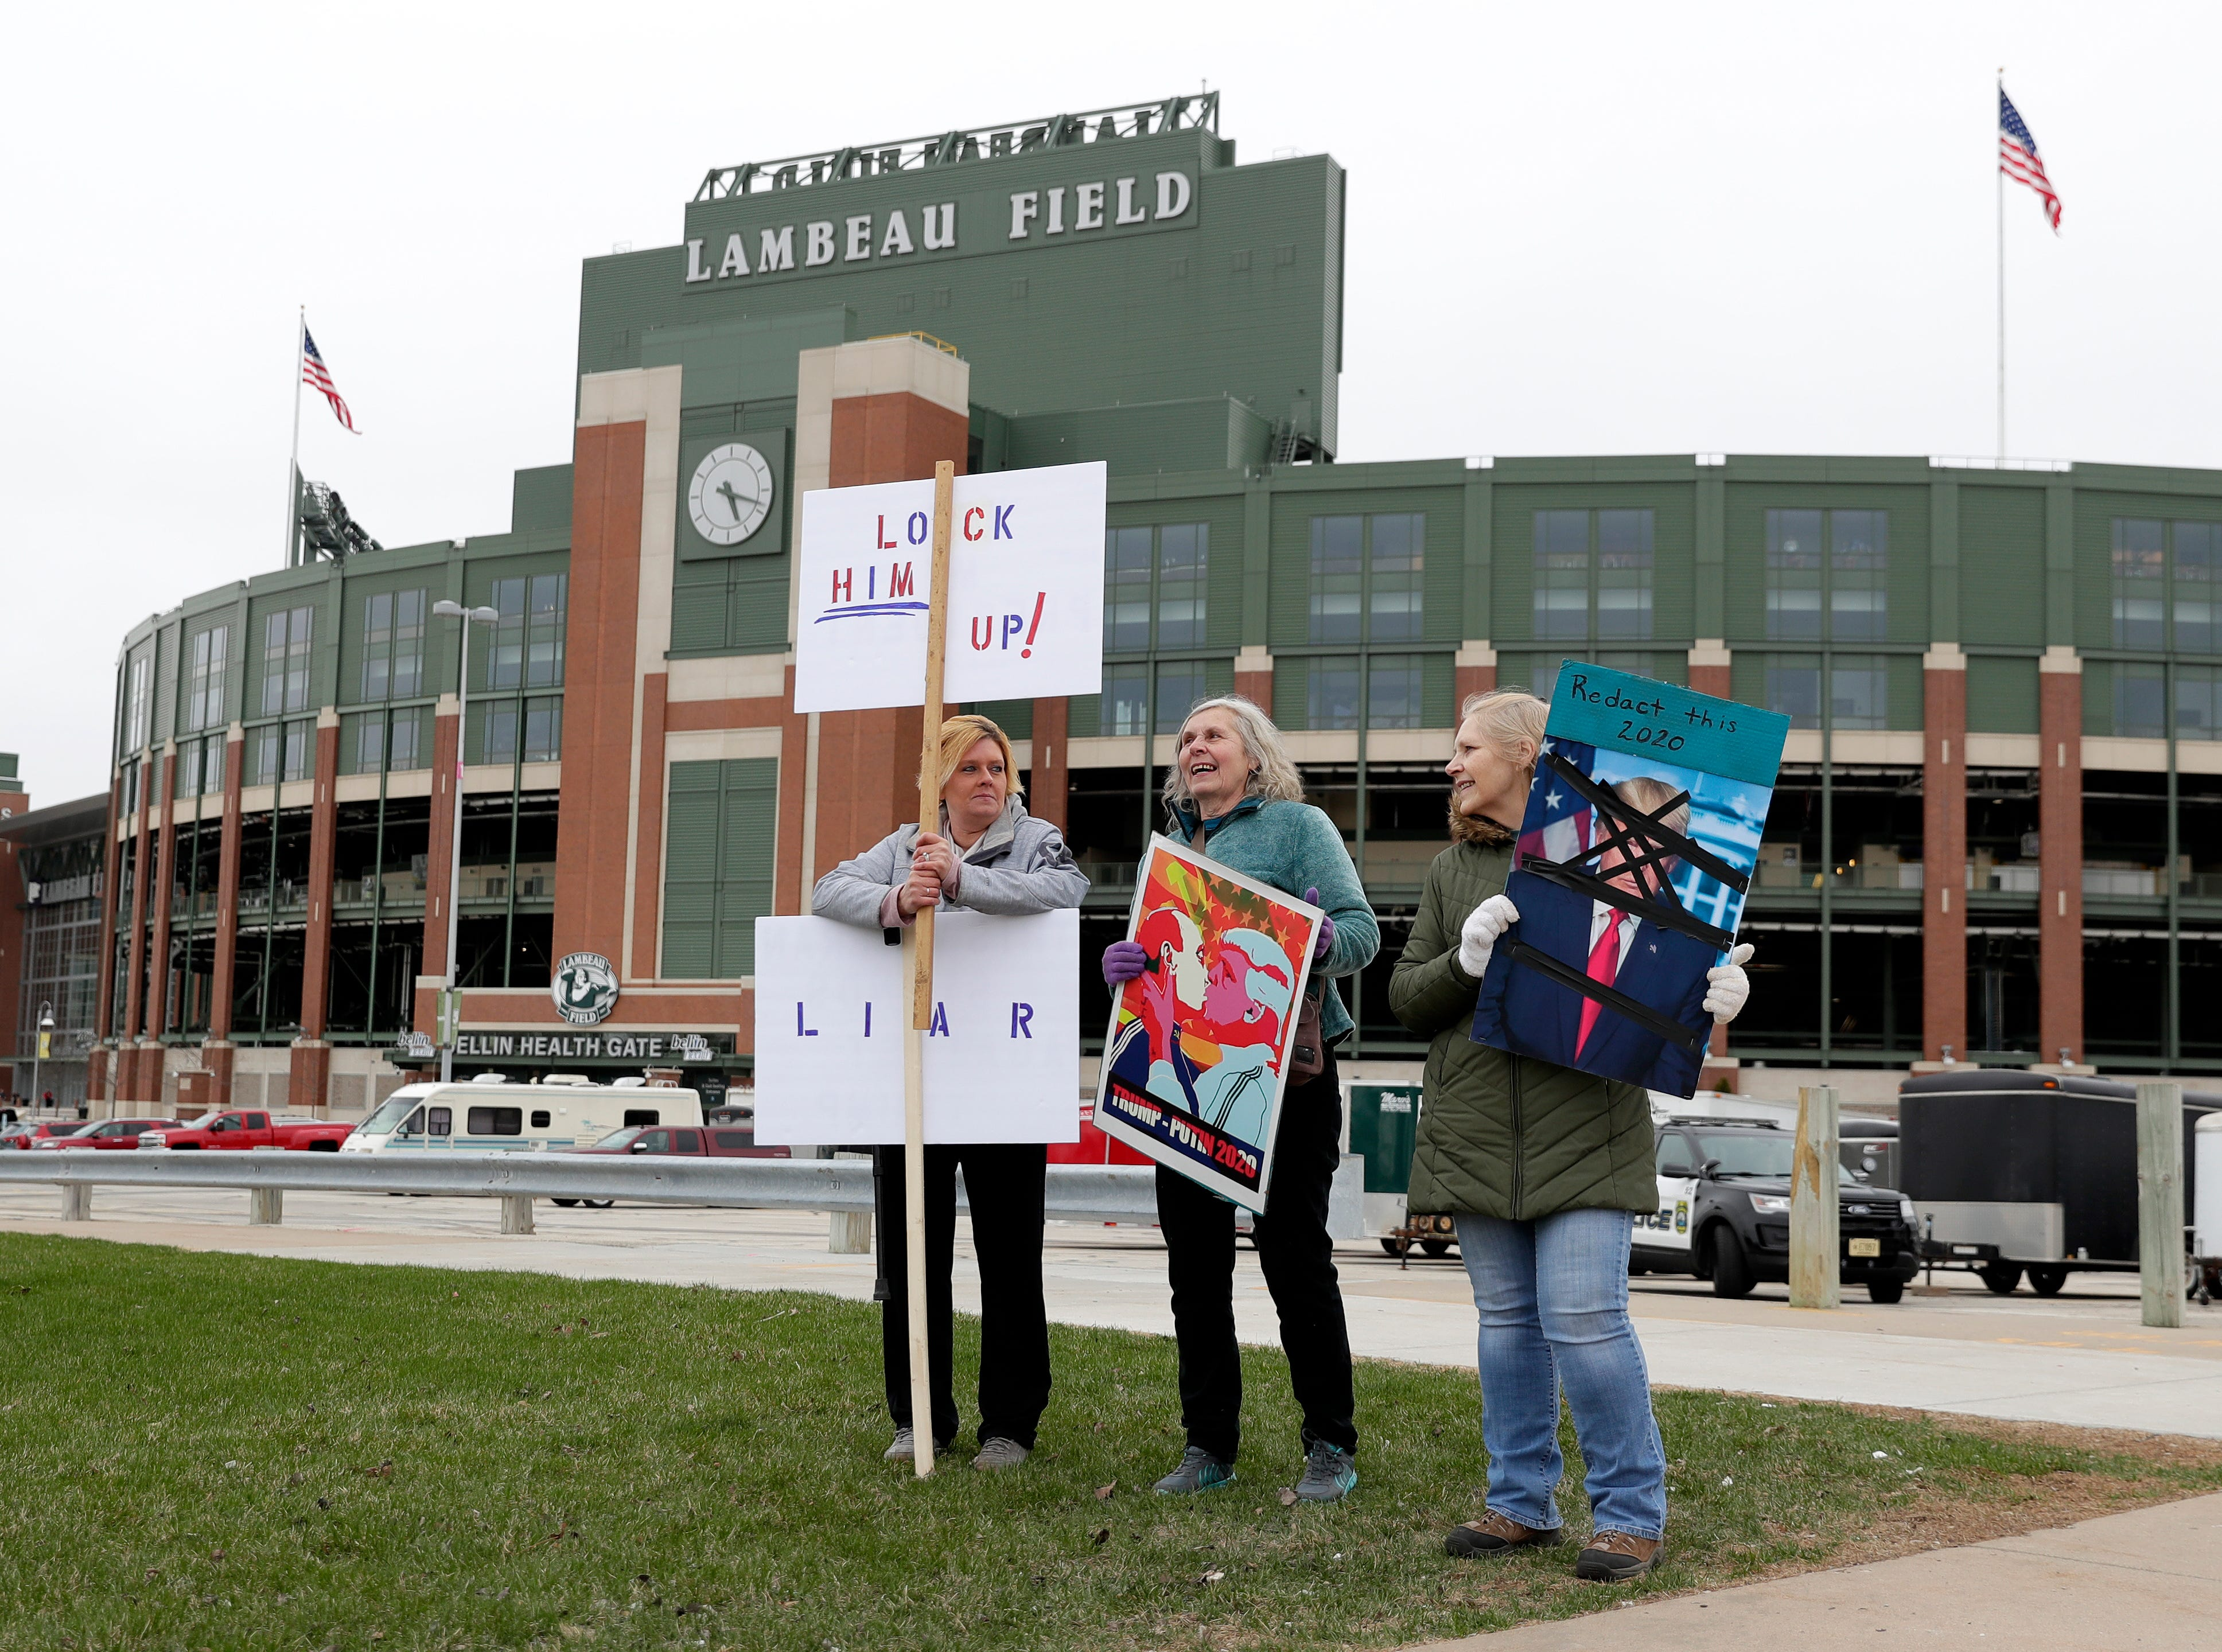 About 50 protesters stood at the corner of Ridge Road and Lombardi Avenue in Green Bay, Wis. before President Donald Trump's rally on April 27, 2019 at the Resch Center.